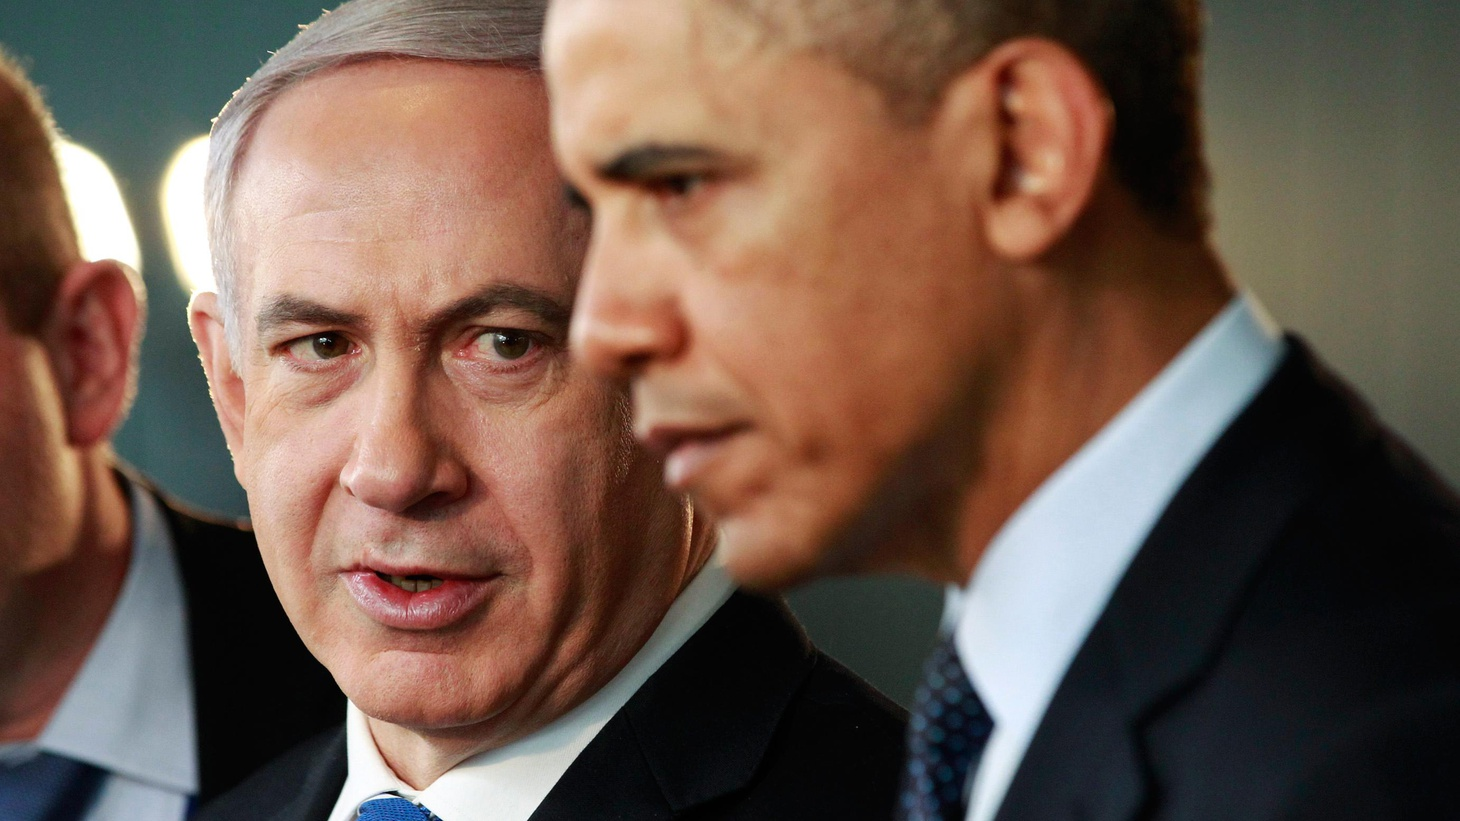 President Obama plunged back into the perils of Middle East diplomacy, backing a Palestinian state while supporting Israel almost without reservation.